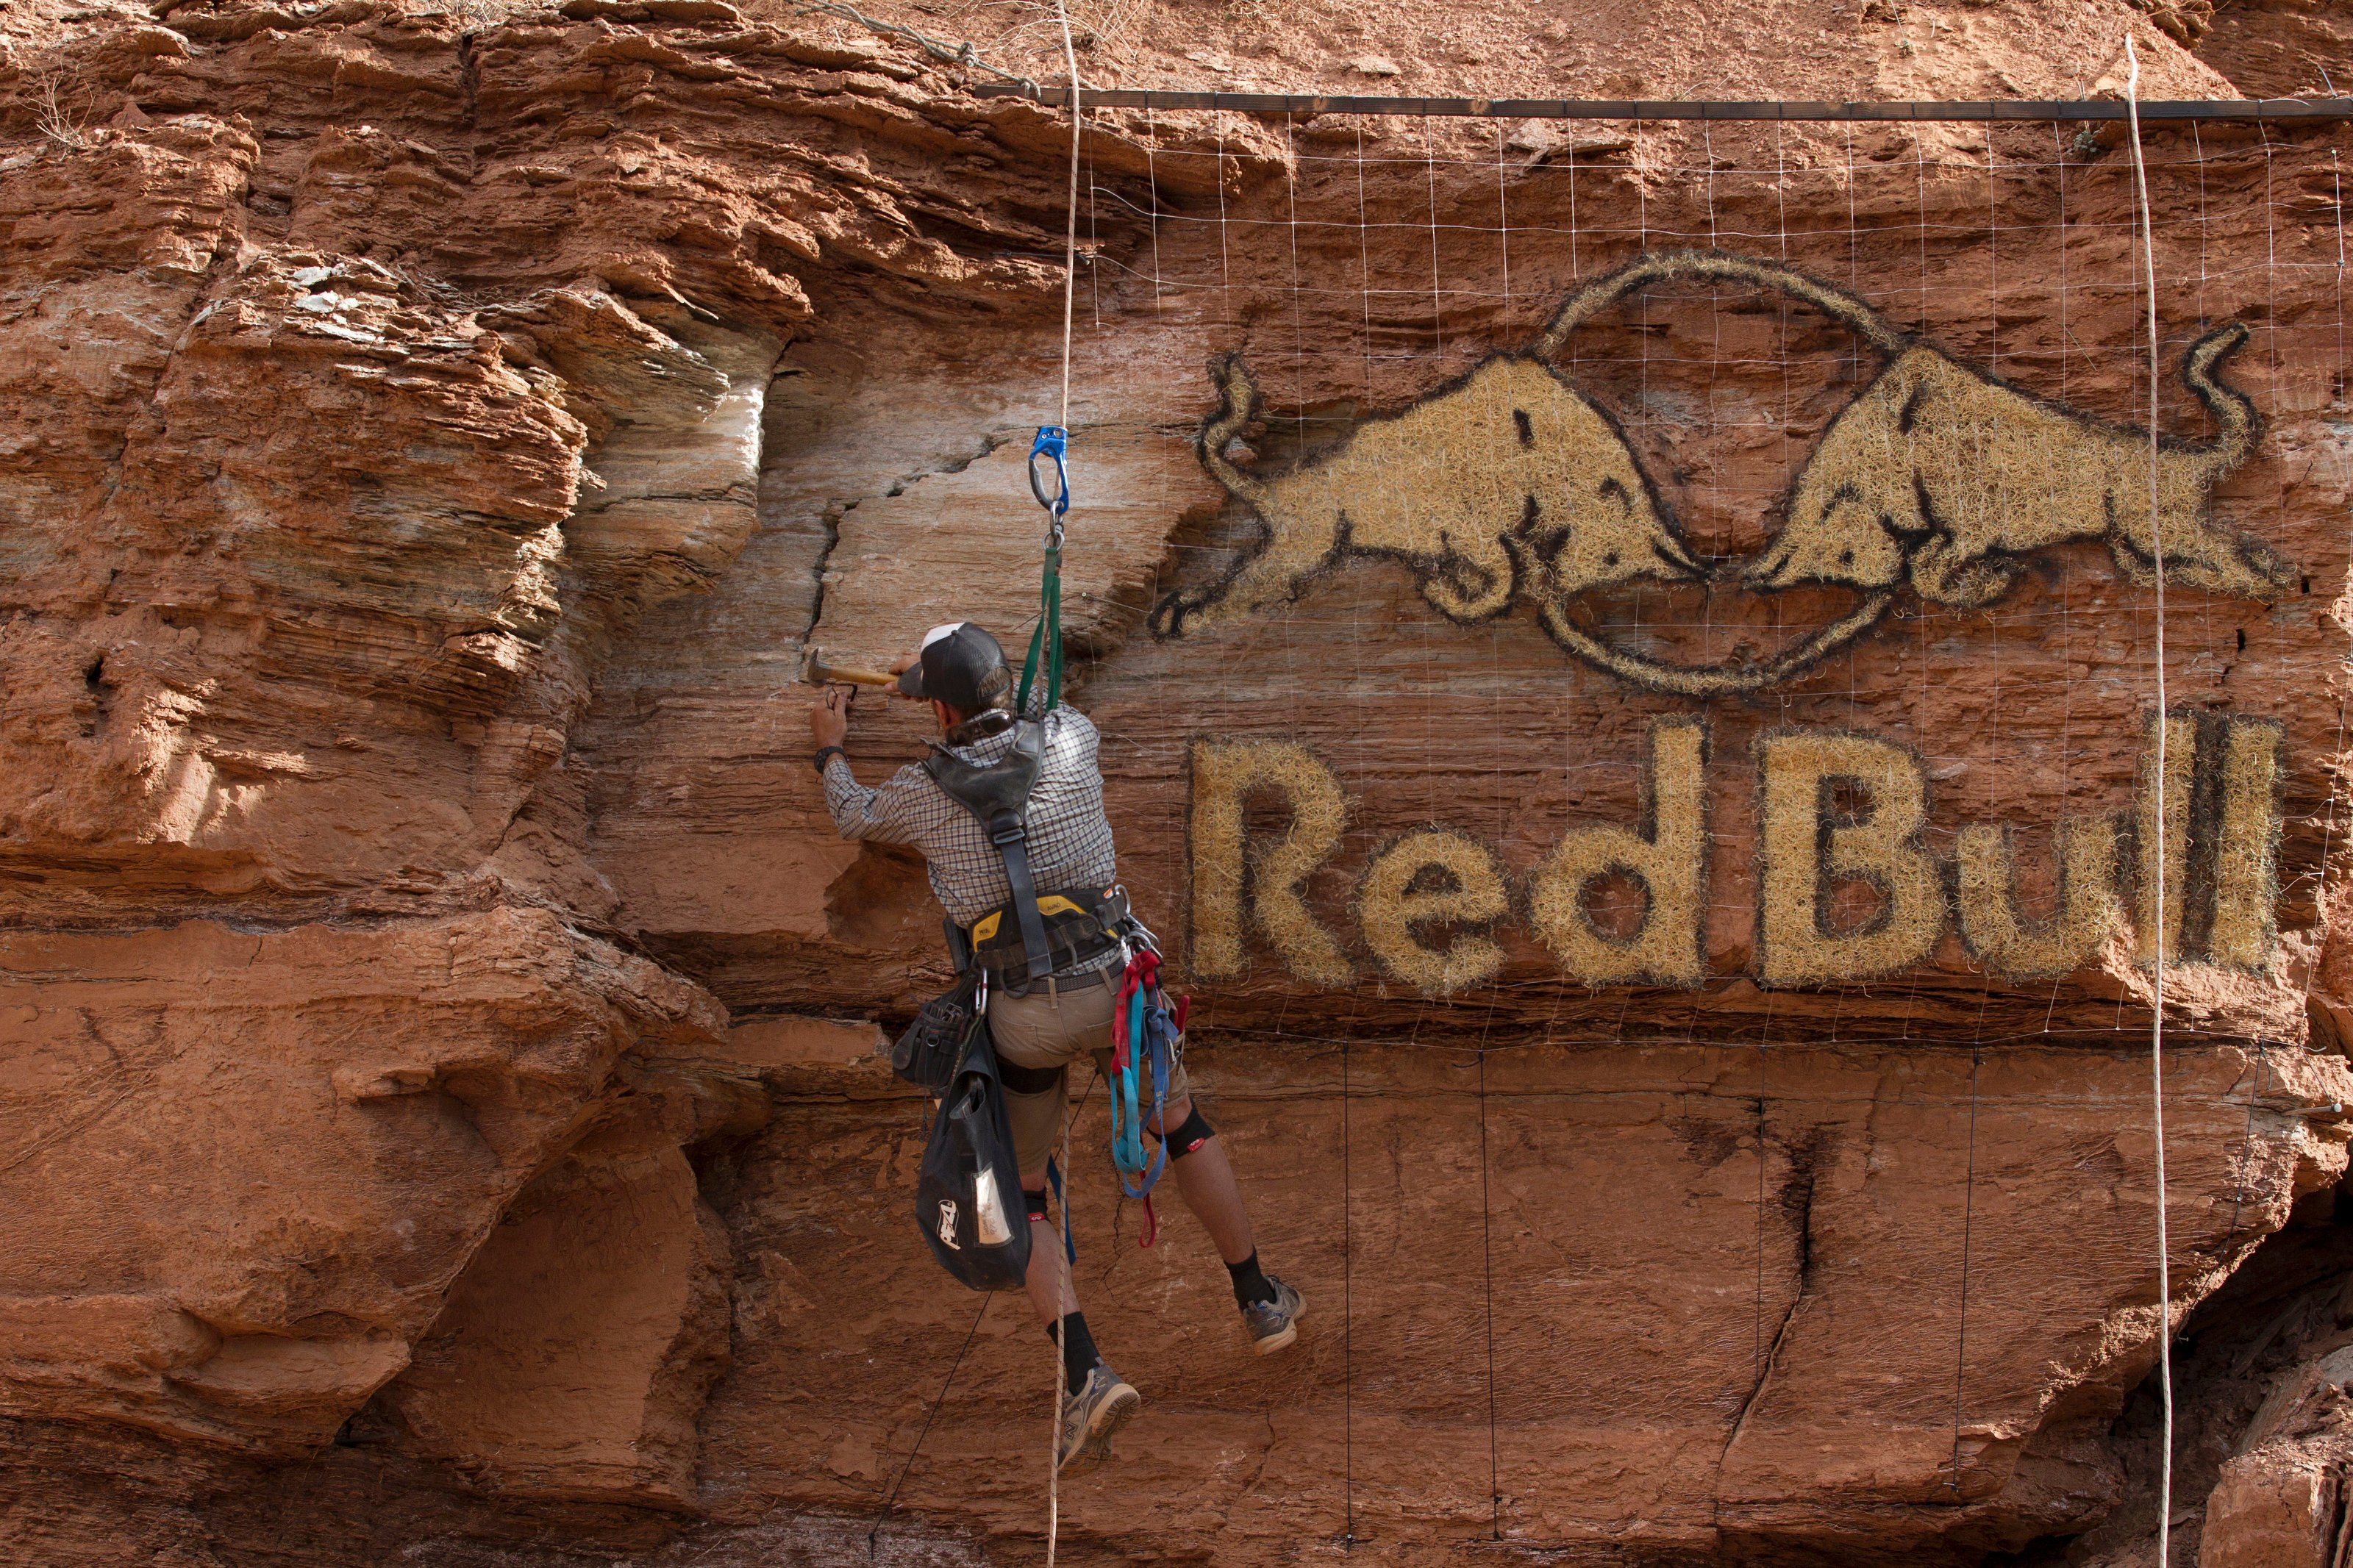 A course worker puts up a banner at Red Bull Rampage, in Virgin, UT, USA, on 9 October, 2013. // John Gibson/Red Bull Content Pool // P-20131010-00015 // Usage for editorial use only // Please go to www.redbullcontentpool.com for further information. //